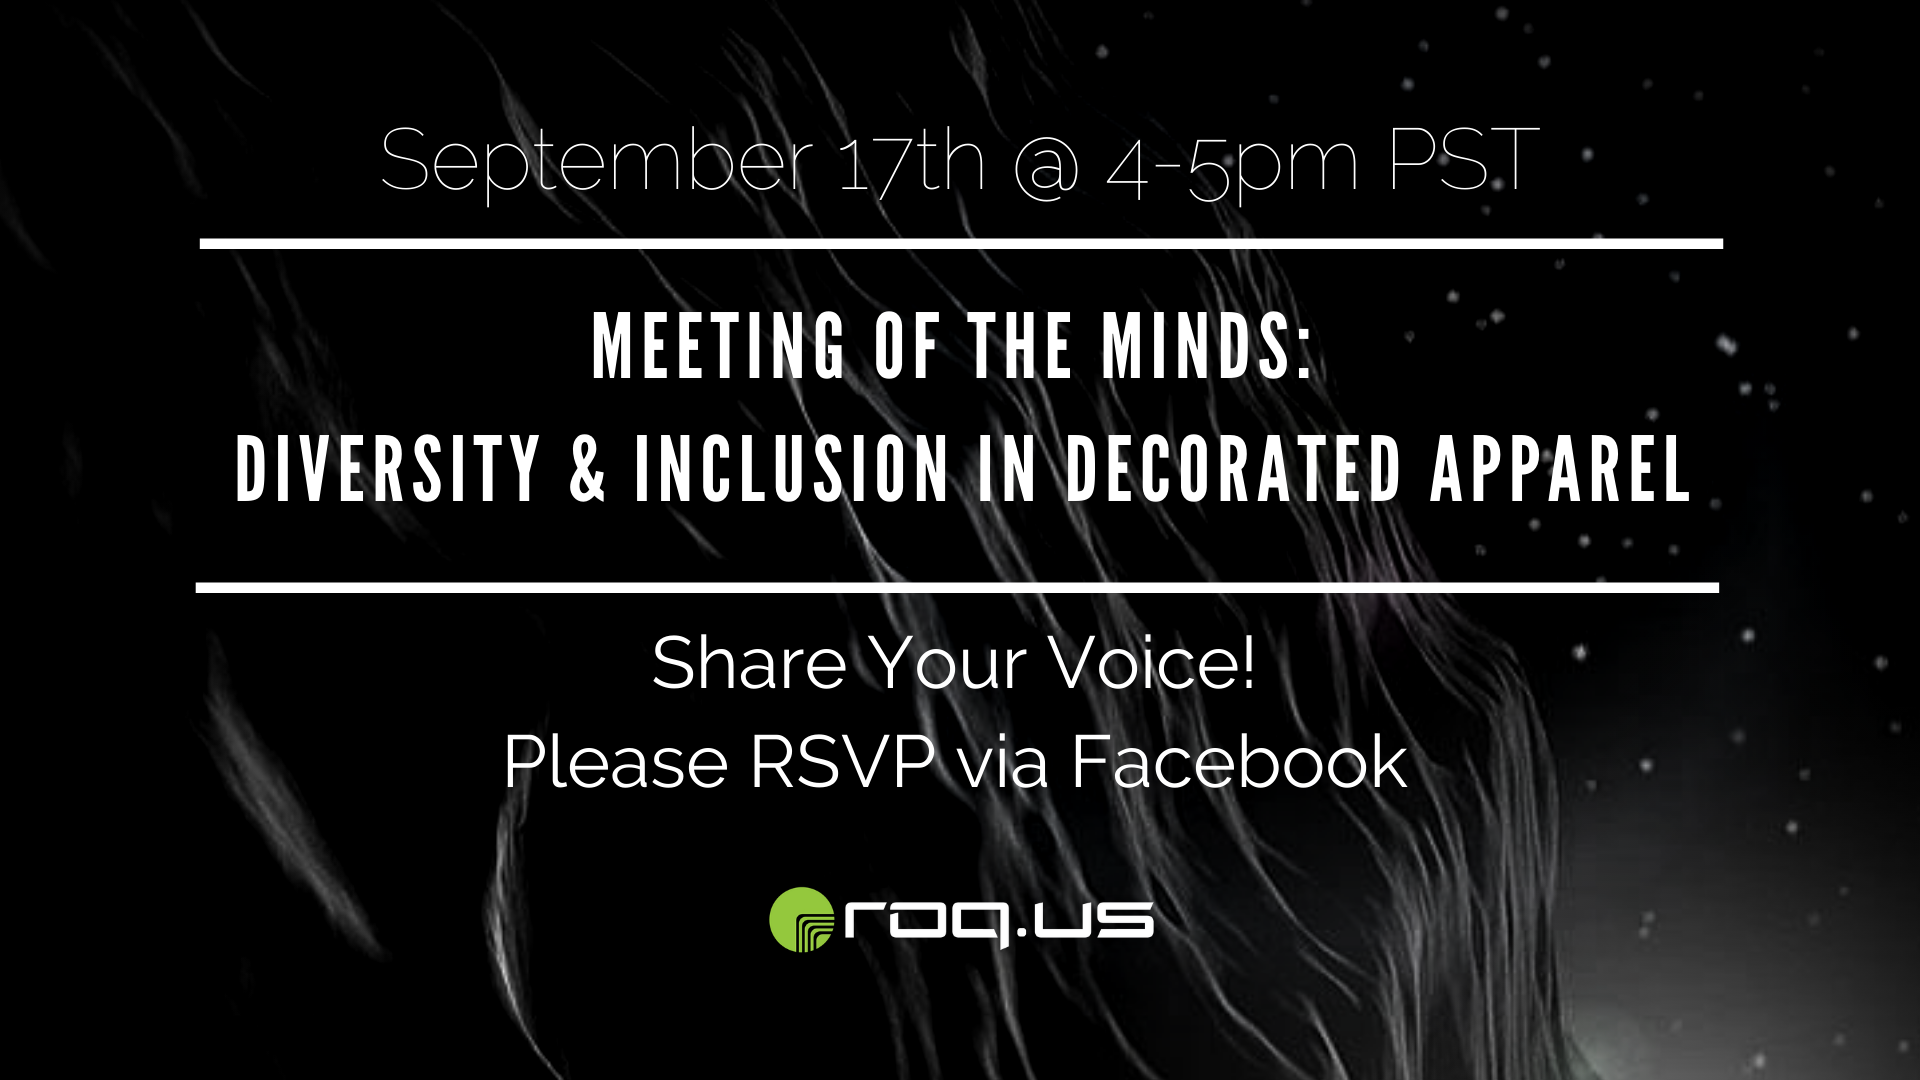 Meeting of the Minds: Diversity & Inclusion in Decorated Apparel